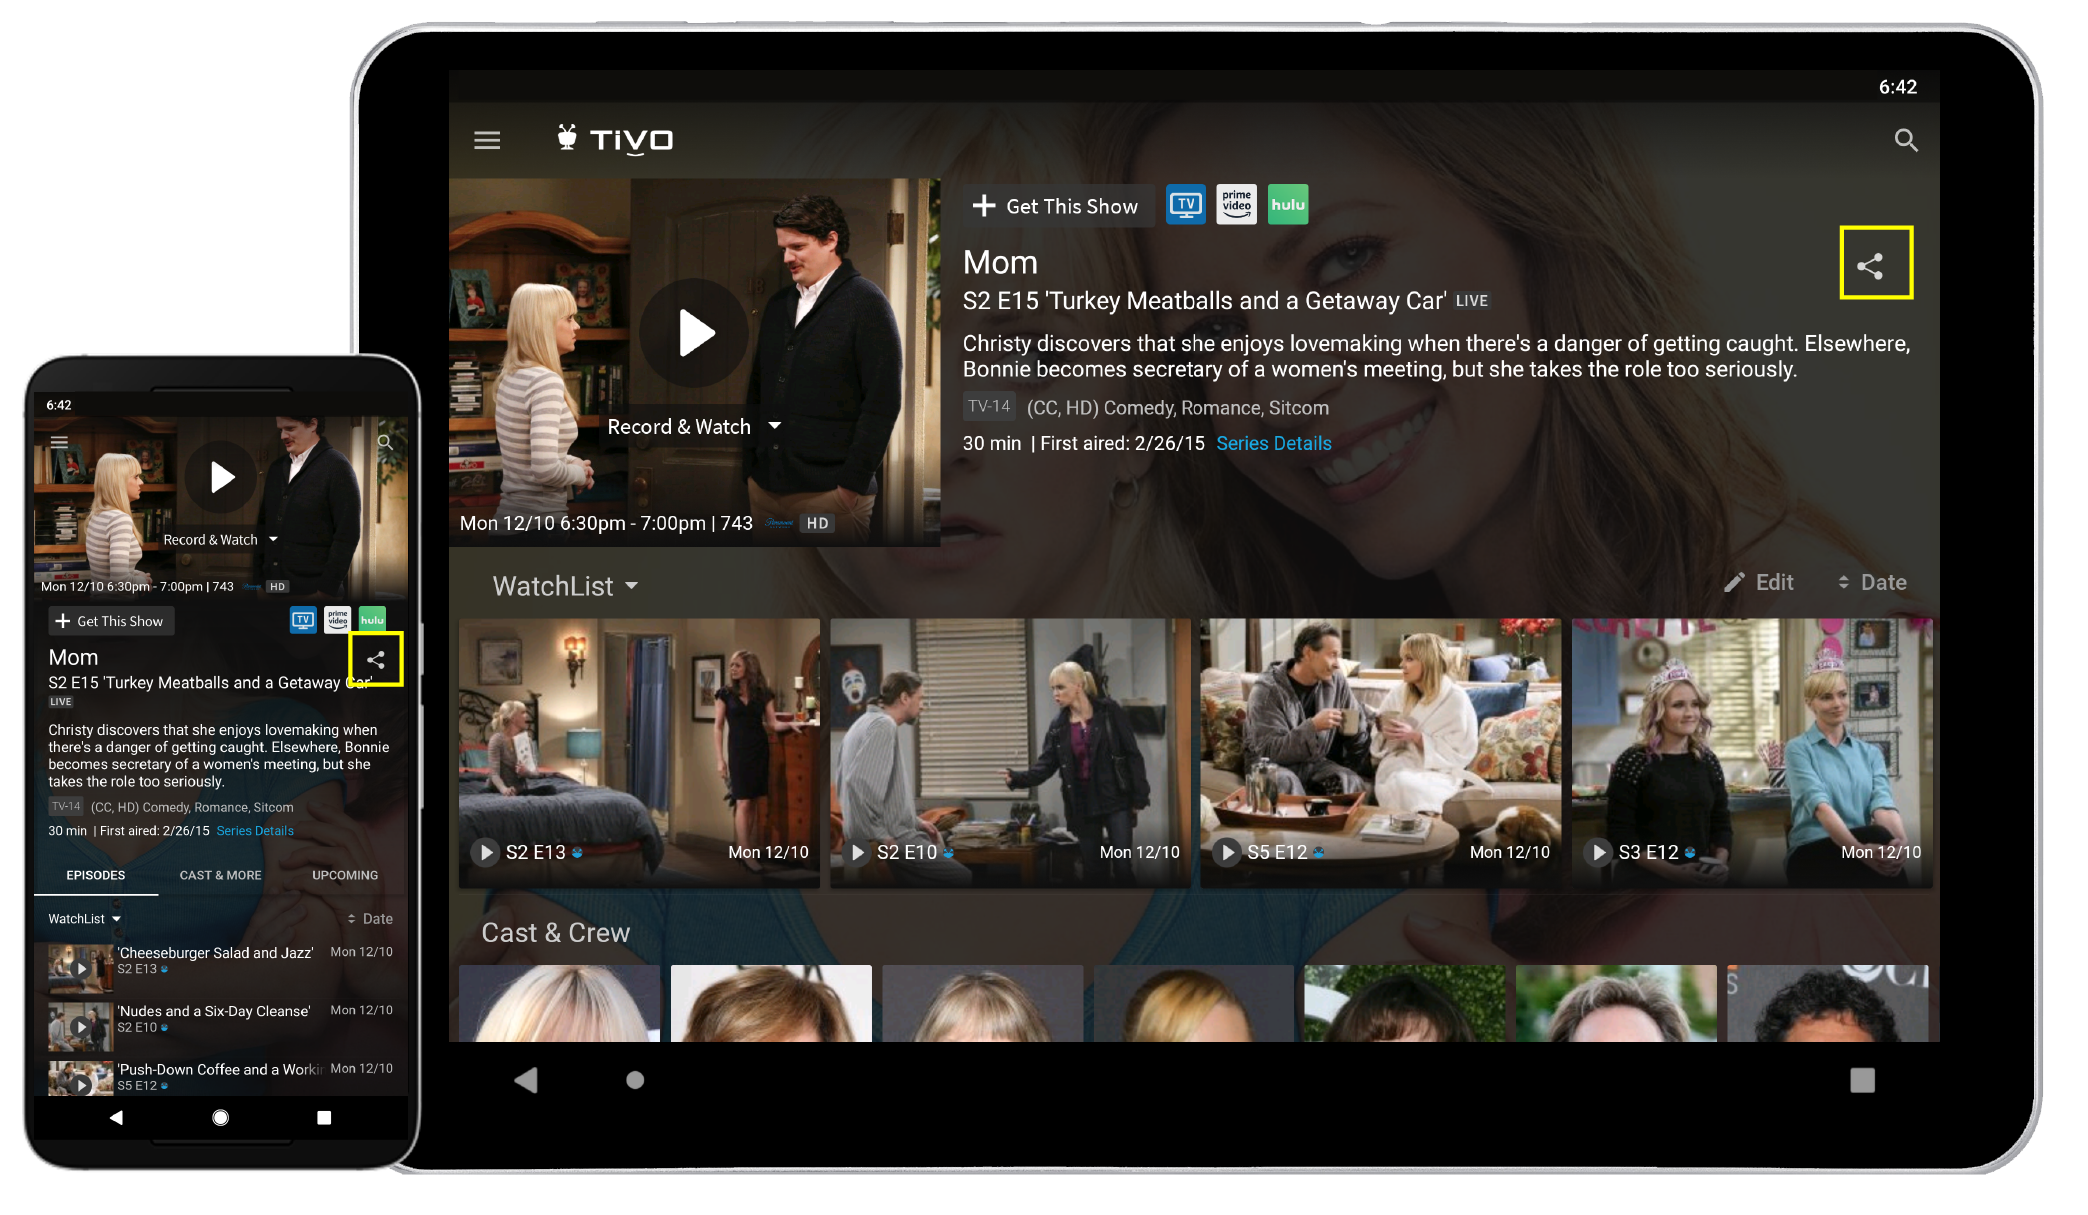 The TiVo app for Android devices